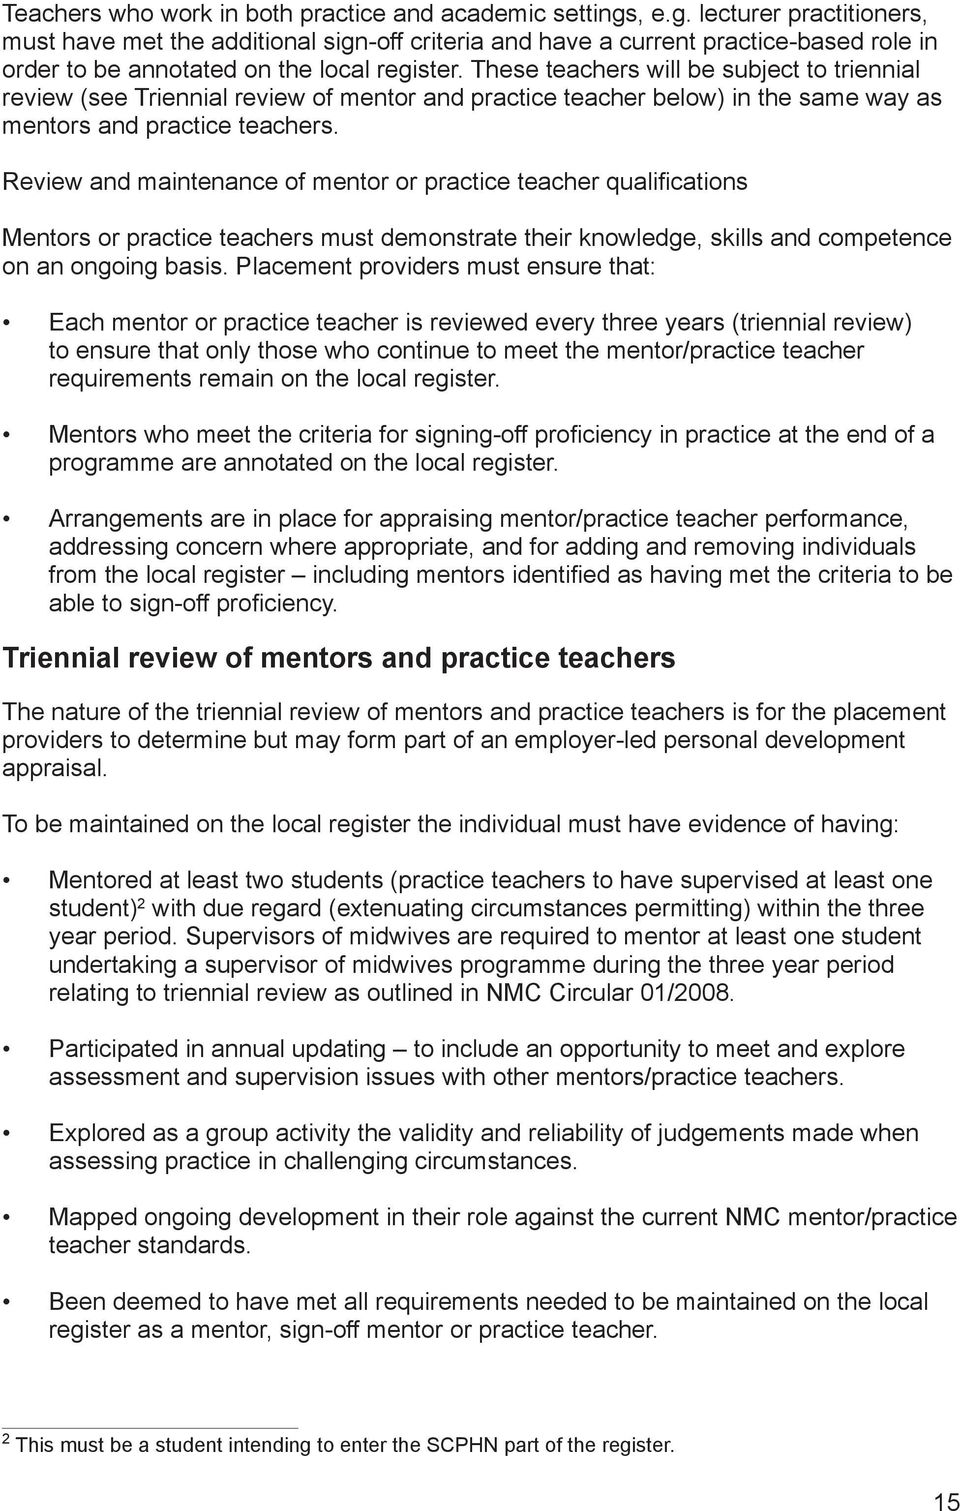 These teachers will be subject to triennial review (see Triennial review of mentor and practice teacher below) in the same way as mentors and practice teachers.